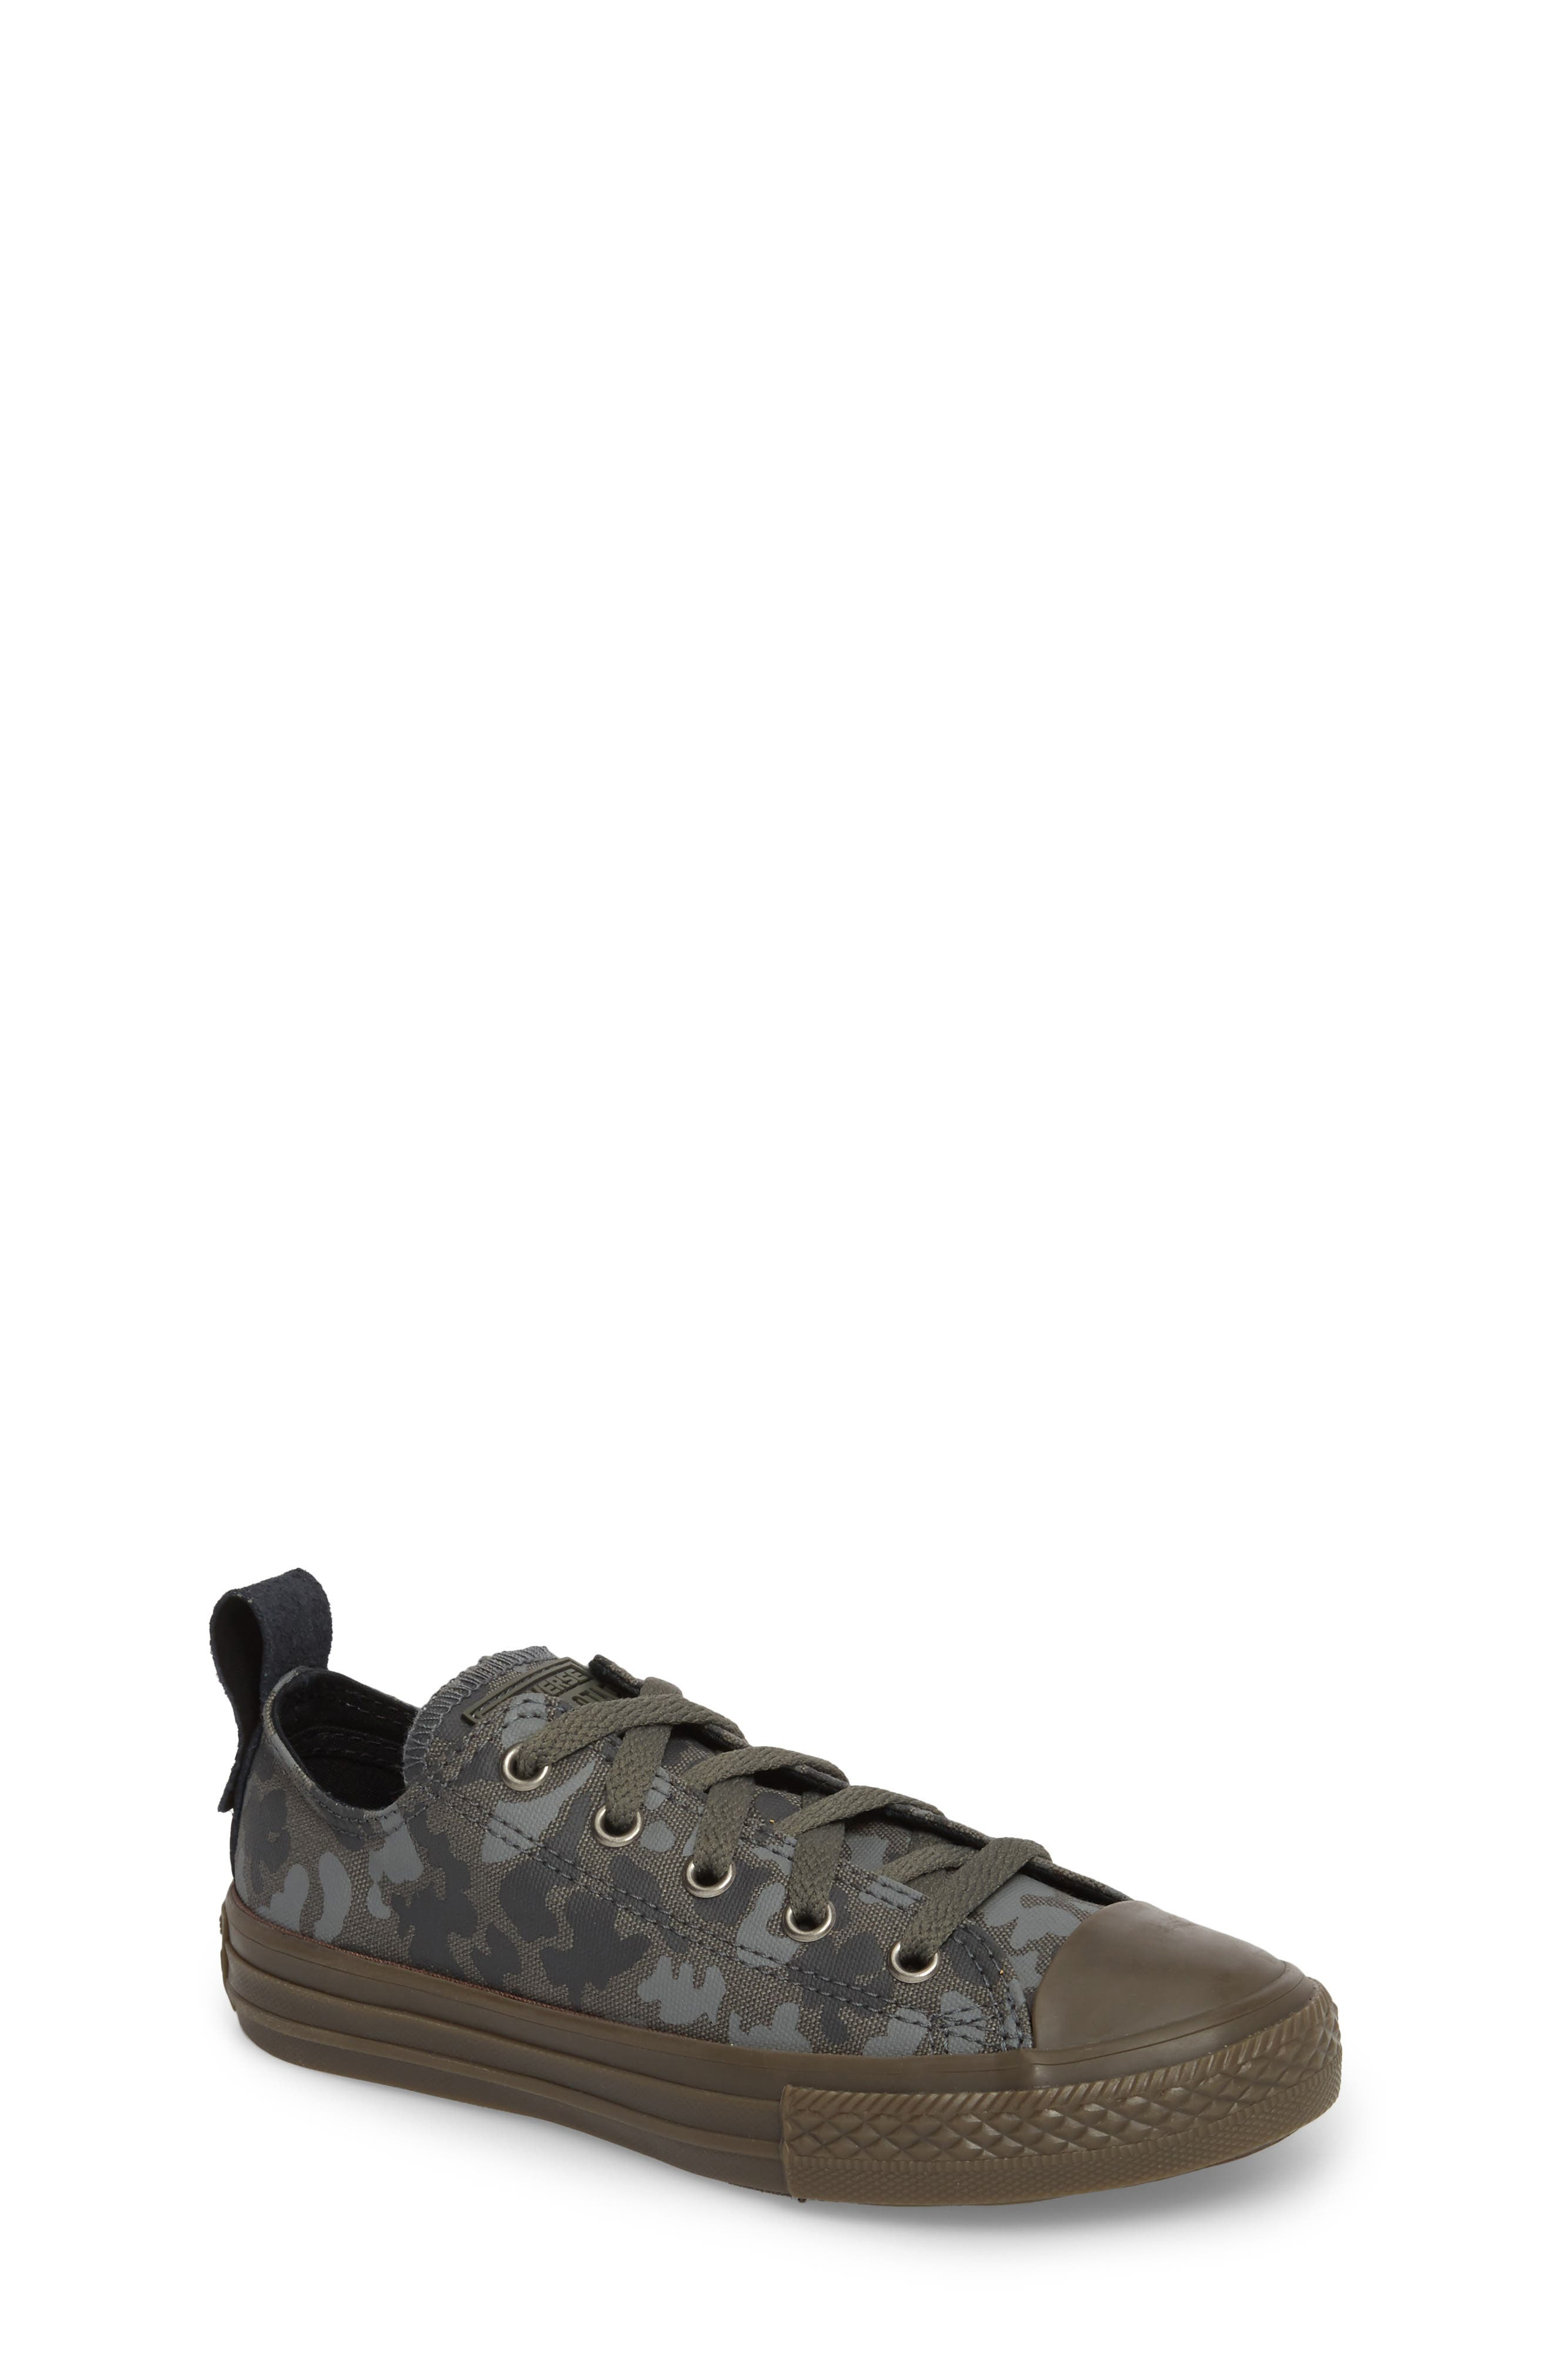 Chuck Taylor<sup>®</sup> All Star<sup>®</sup> Camo Ox Low Top Sneaker,                             Main thumbnail 1, color,                             022